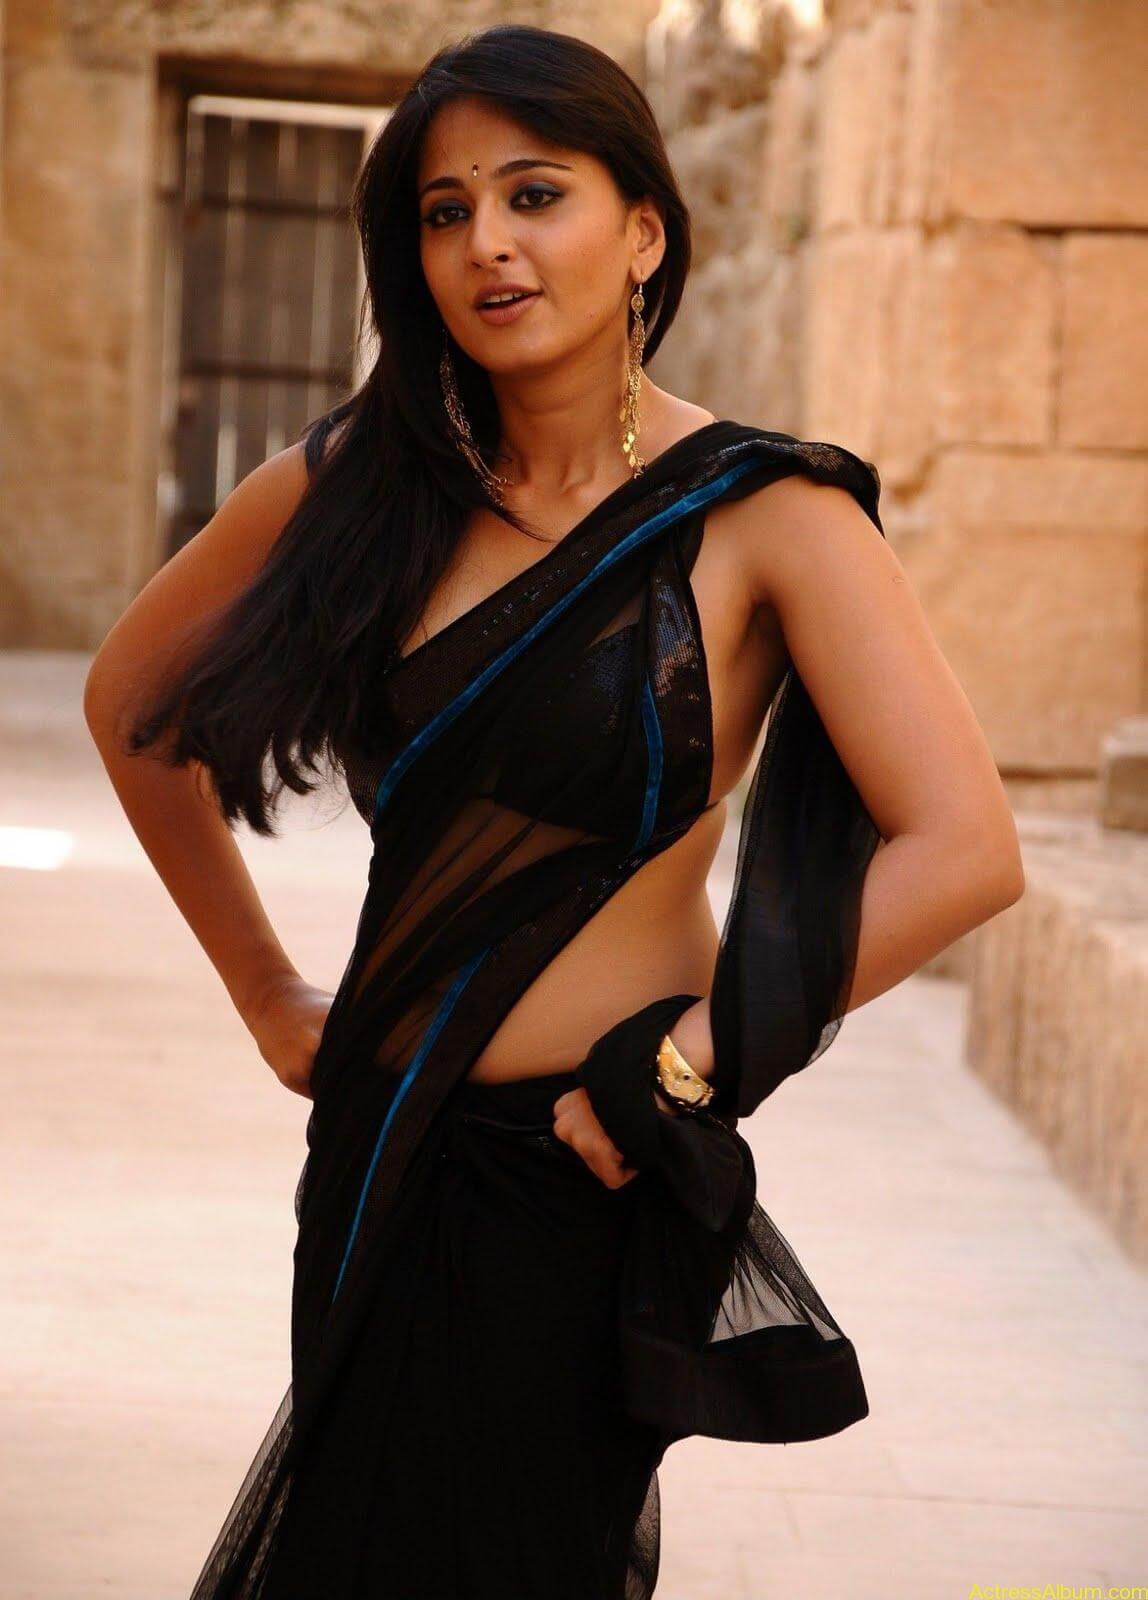 Anushka Shetty In Black Saree11